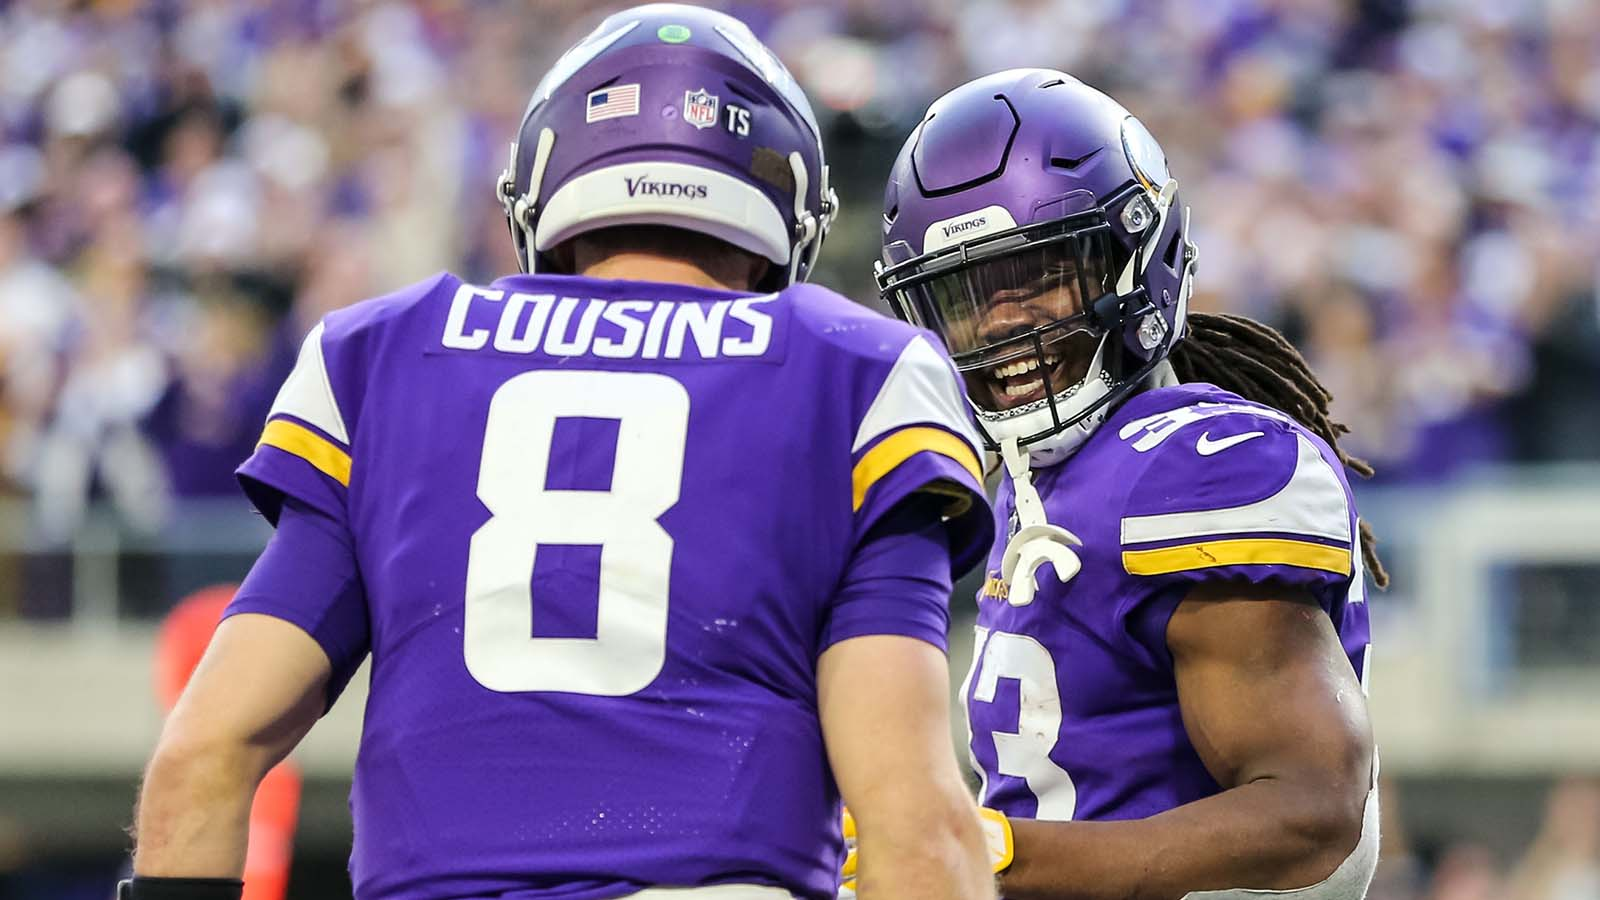 Dec 16, 2018; Minneapolis, MN, USA; Minnesota Vikings running back Dalvin Cook (33) celebrates with quarterback Kirk Cousins (8) during the fourth quarter against the Miami Dolphins at U.S. Bank Stadium. Mandatory Credit: Brace Hemmelgarn-USA TODAY Sports